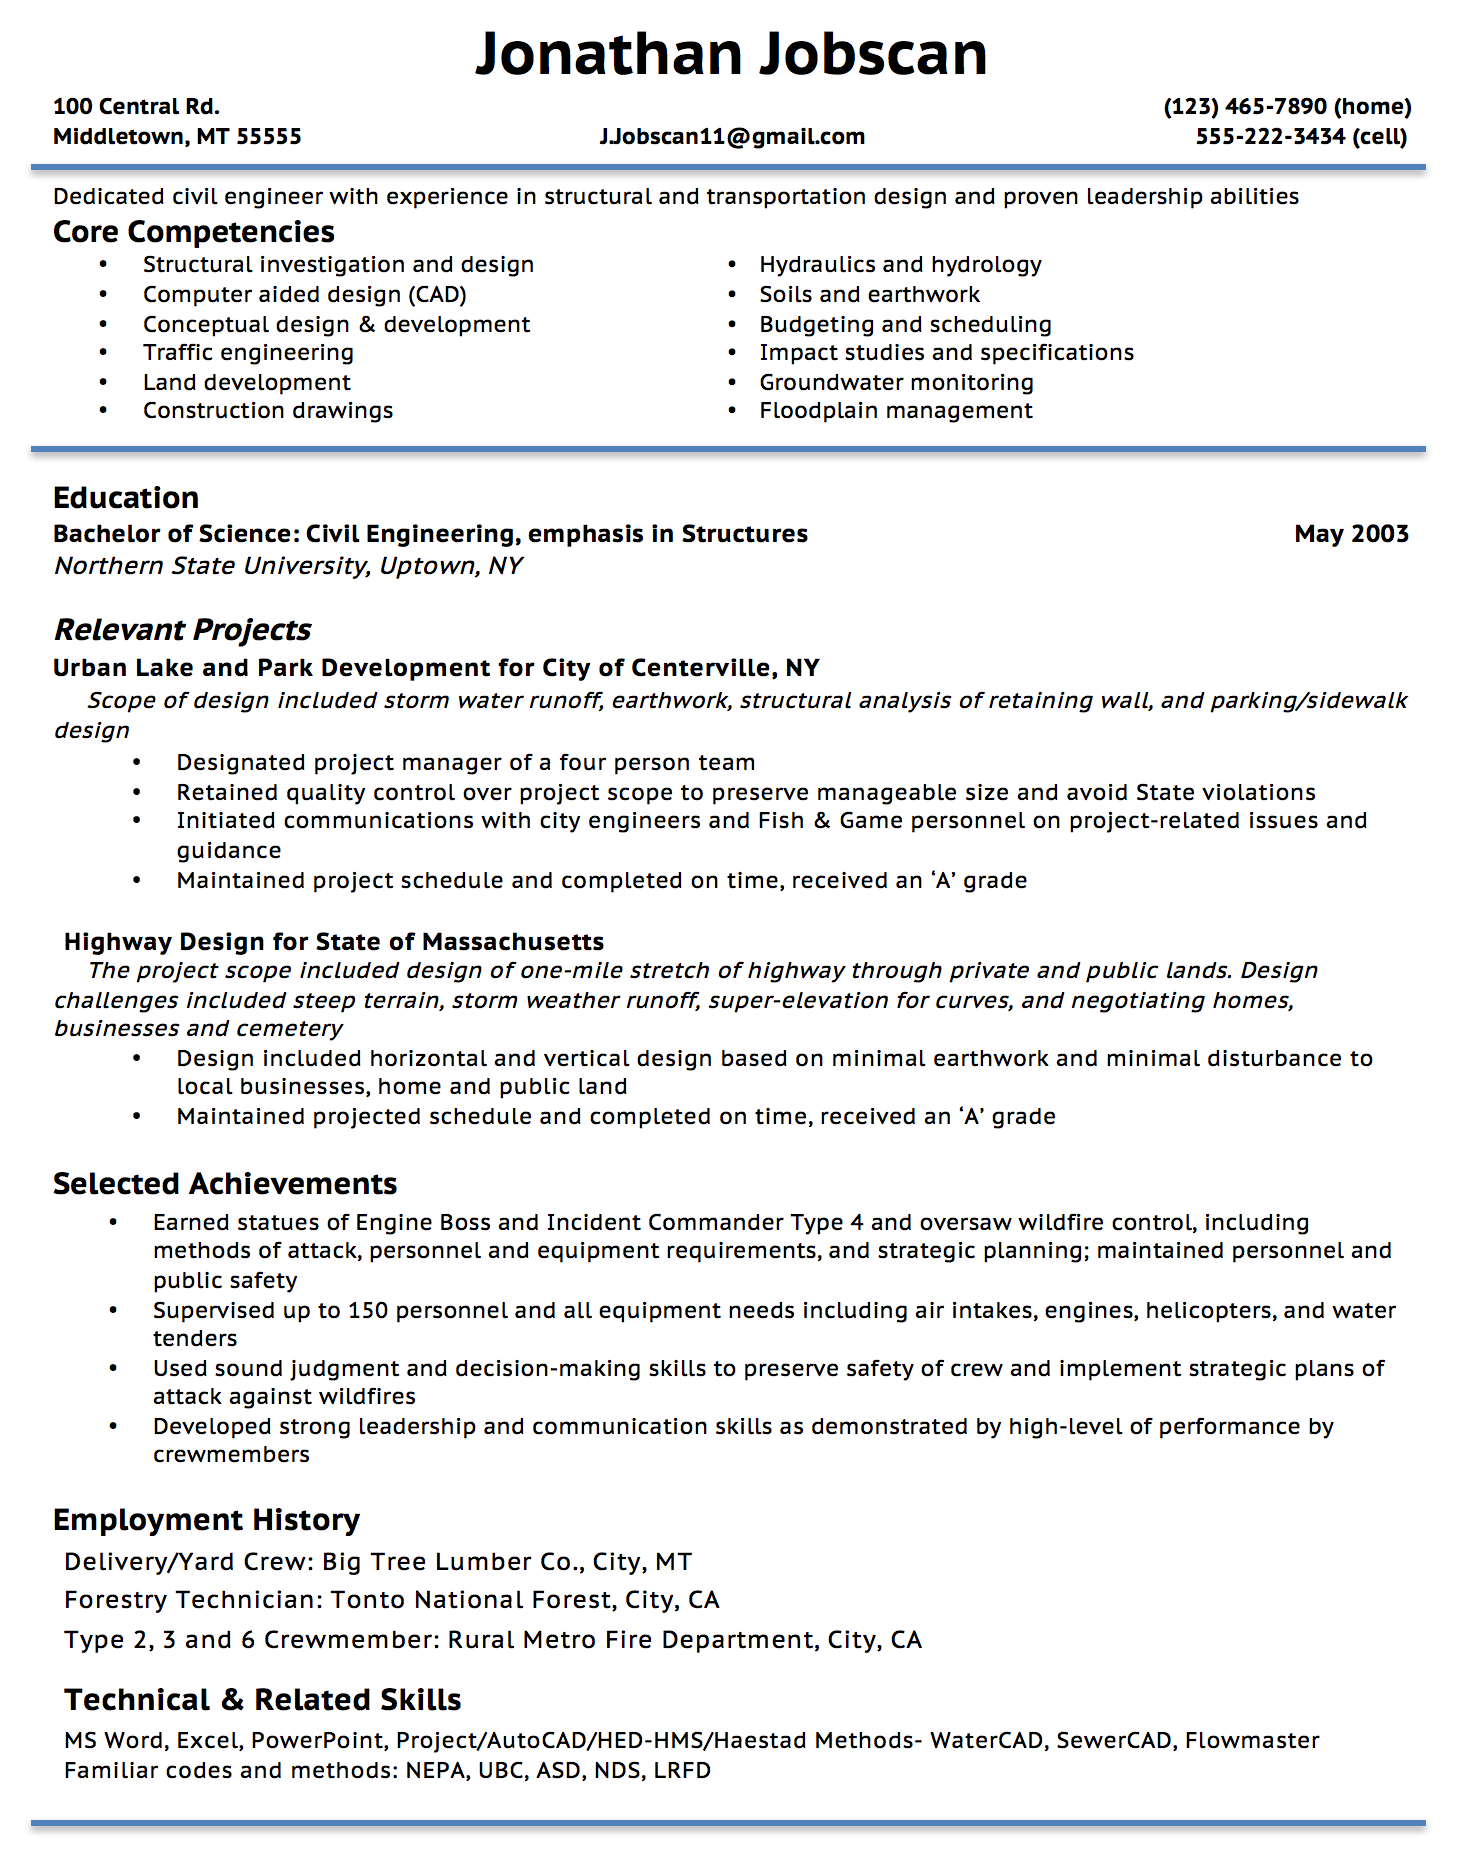 Opposenewapstandardsus  Stunning Resume Writing Guide  Jobscan With Entrancing Example Of A Functional Resume Format With Delightful Best Sales Resume Also How To Send Resume Via Email In Addition Resume Purpose Statement And What To Have On A Resume As Well As Data Analytics Resume Additionally Truck Driver Resume Sample From Jobscanco With Opposenewapstandardsus  Entrancing Resume Writing Guide  Jobscan With Delightful Example Of A Functional Resume Format And Stunning Best Sales Resume Also How To Send Resume Via Email In Addition Resume Purpose Statement From Jobscanco